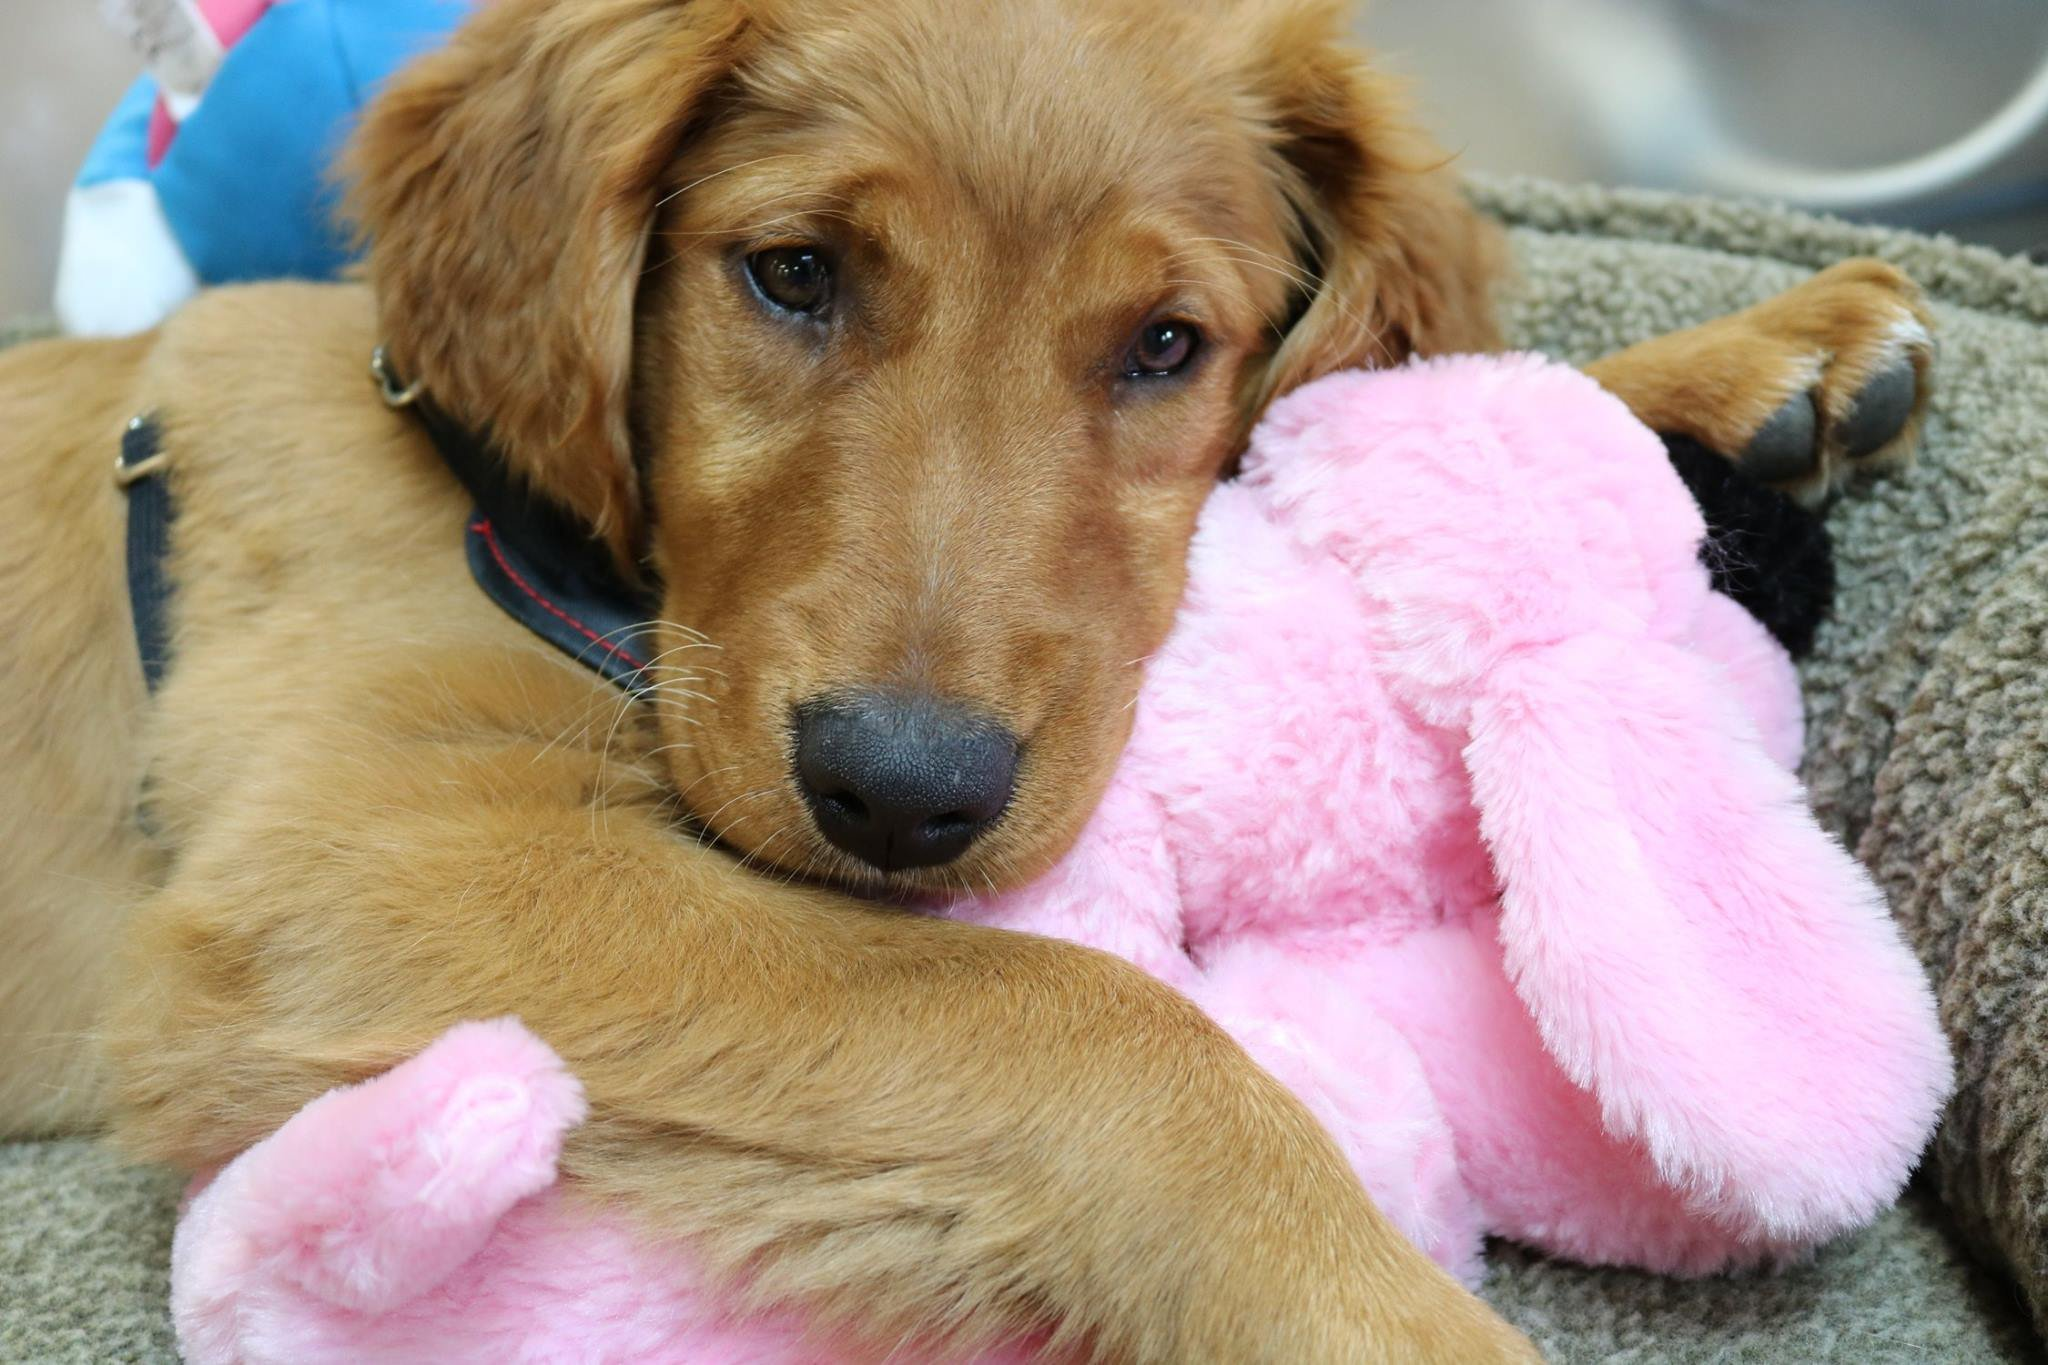 Snuggle Puppy - New Puppy Starter Kit (Pink)